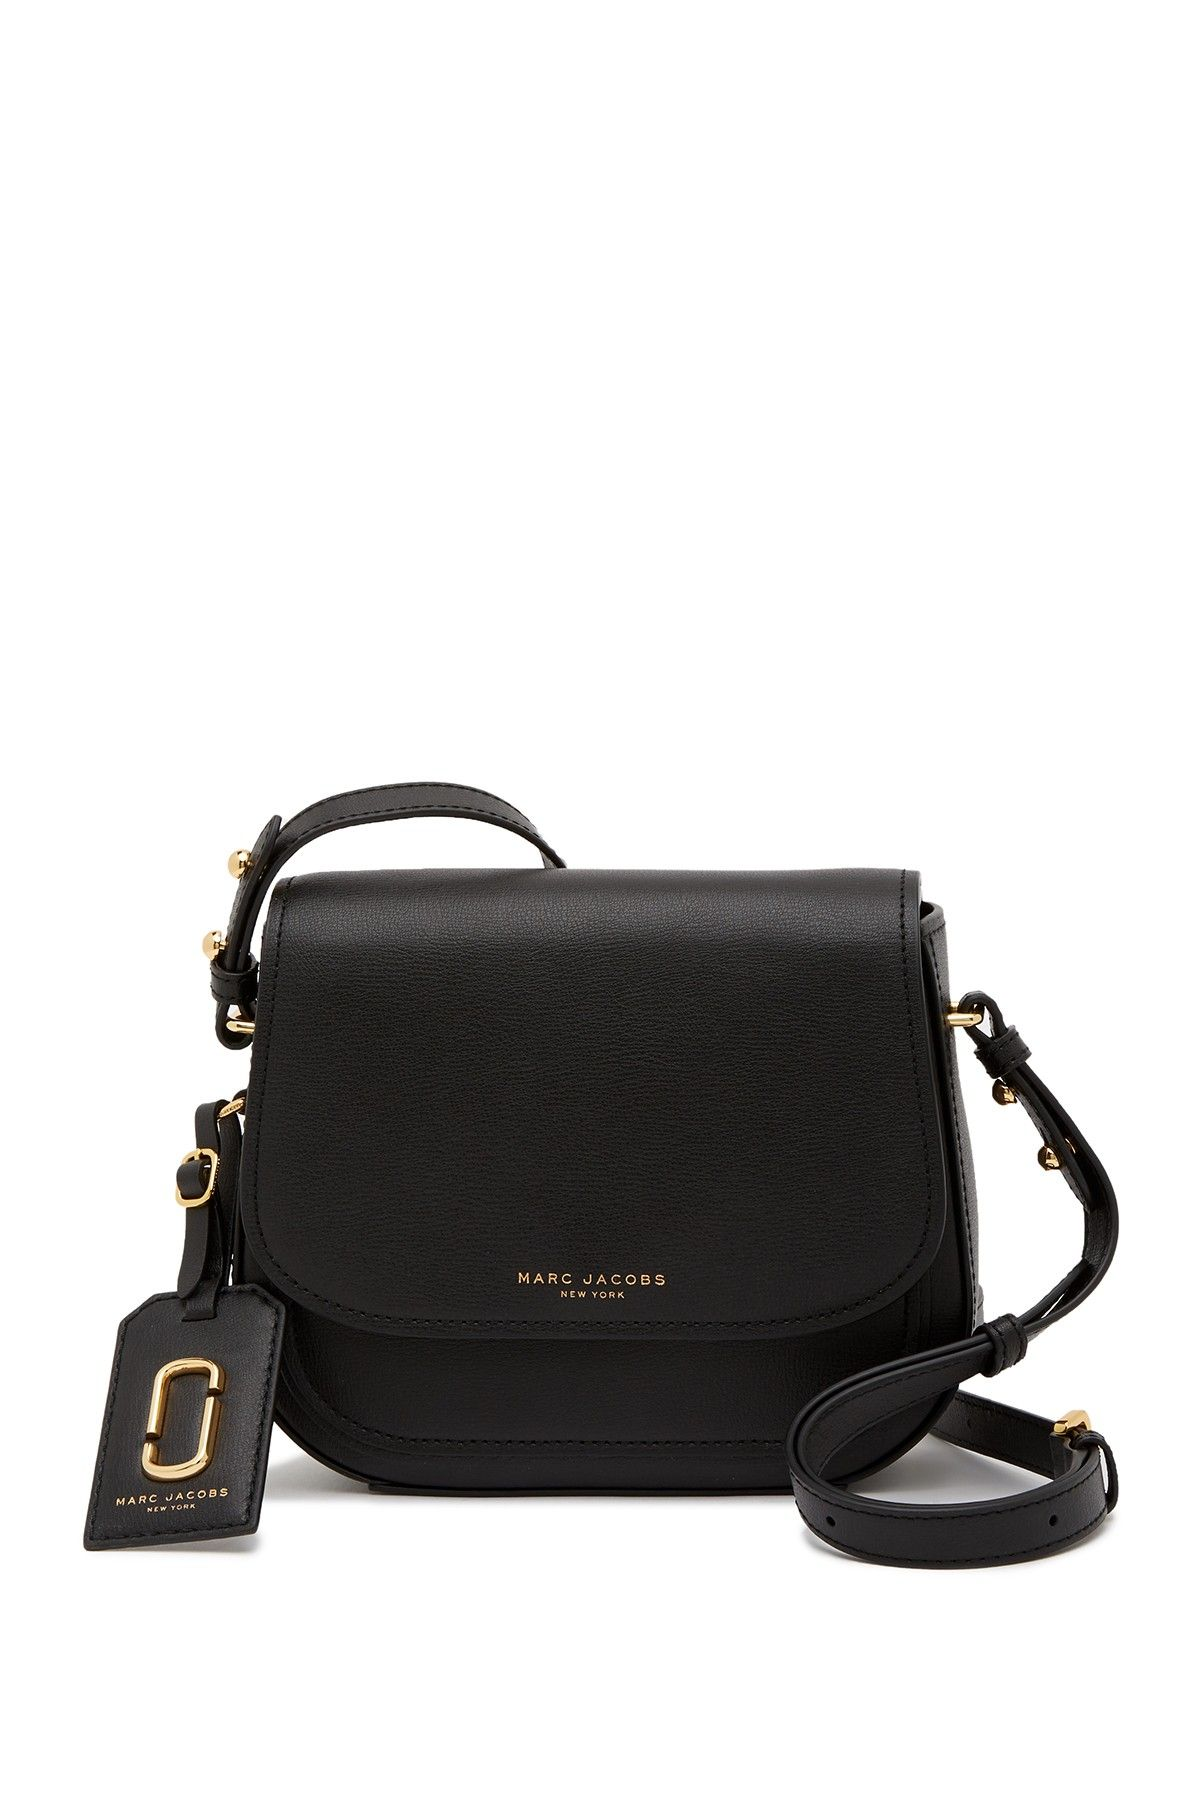 Mini Rider Leather Crossbody Bag by Marc Jacobs on  nordstrom rack cd7fe9a6096d6